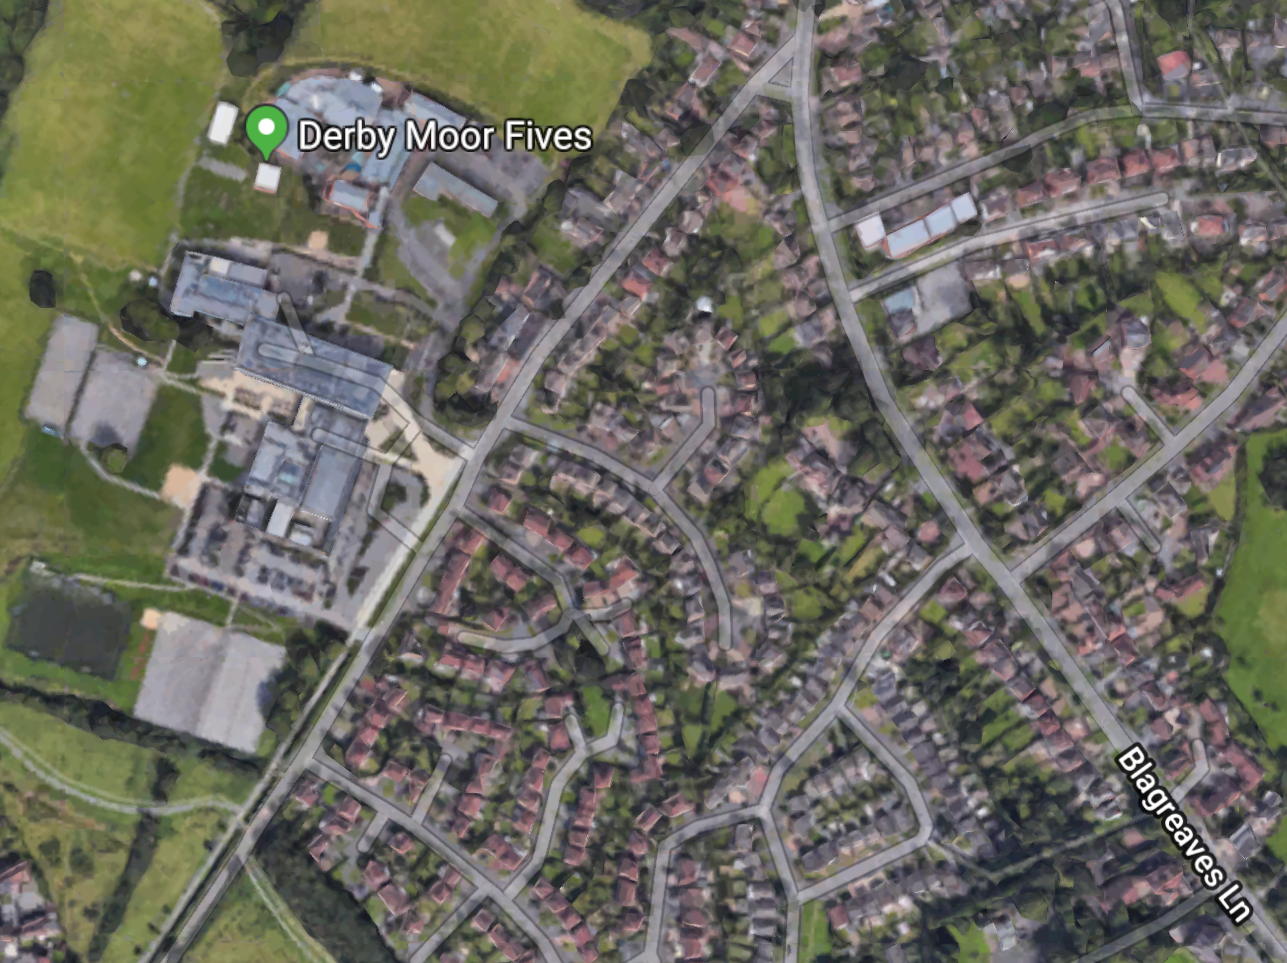 Google Map showing location of Fives Courts at Derby Moor Academy